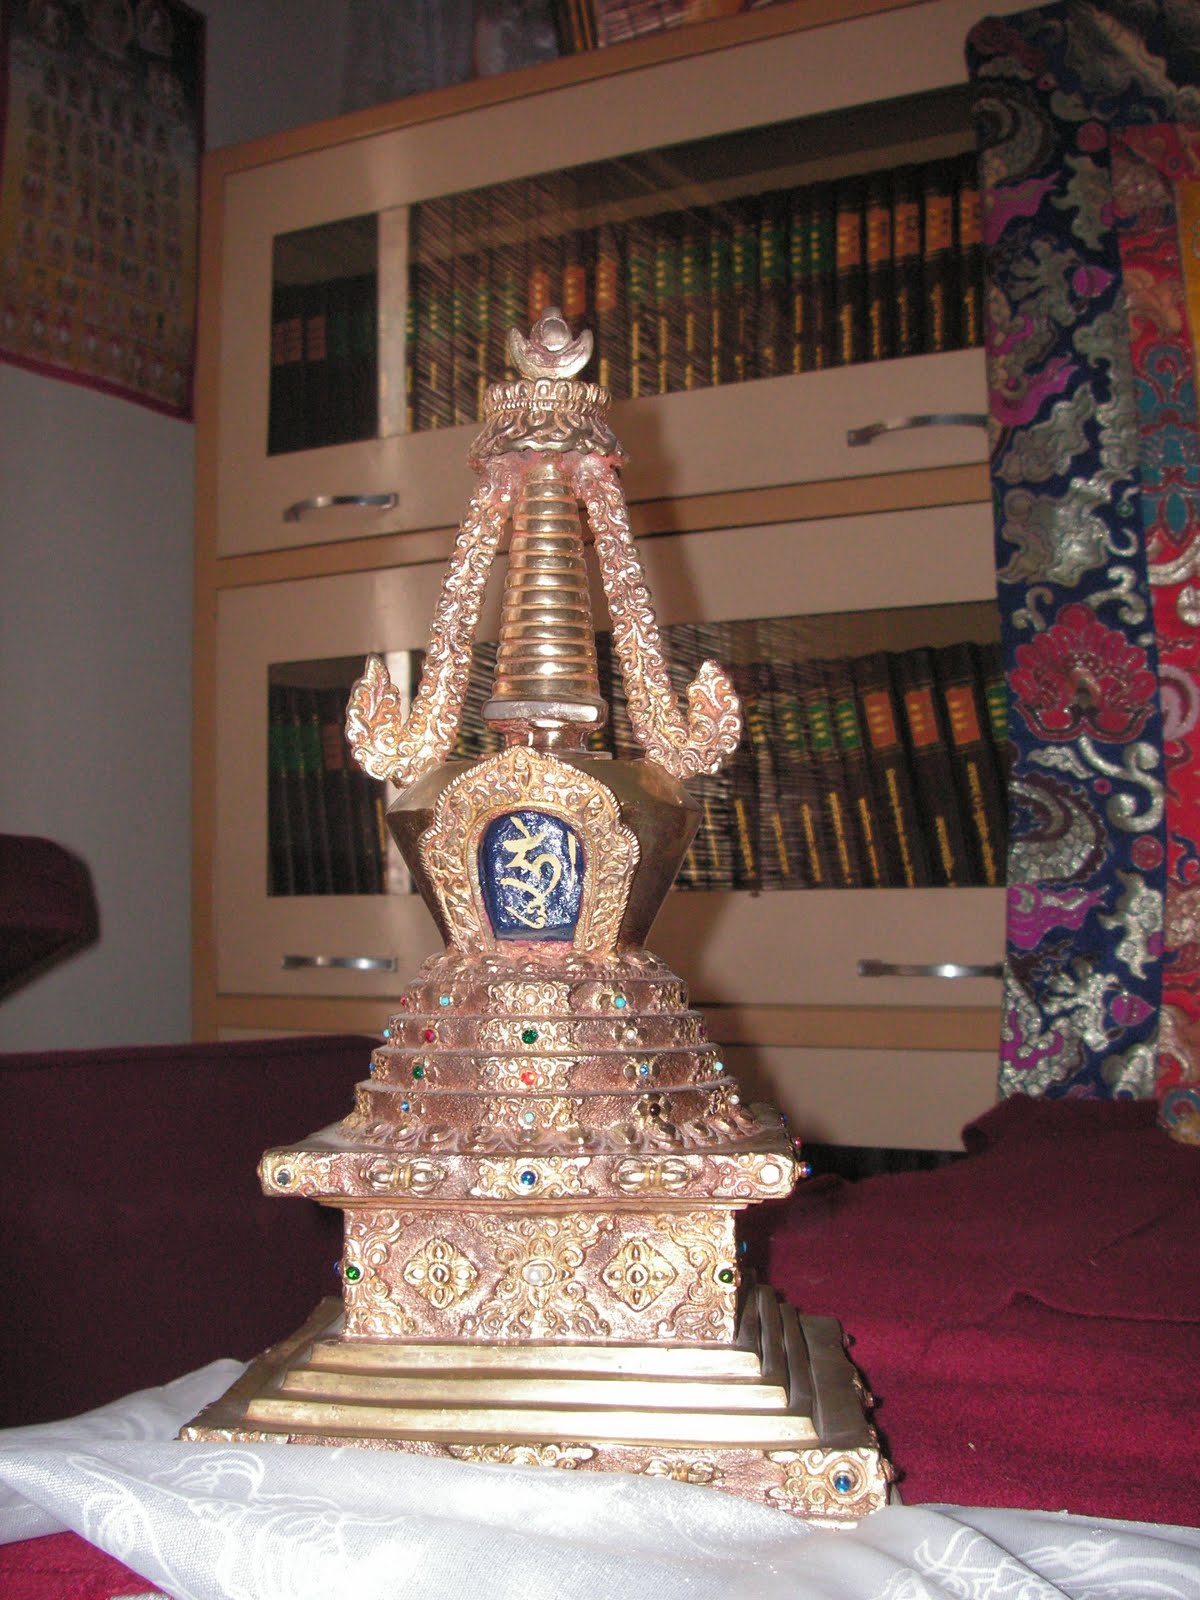 Namgyalma Stupa at Choe Khor Sum Ling Study Group, Bangalore, India.